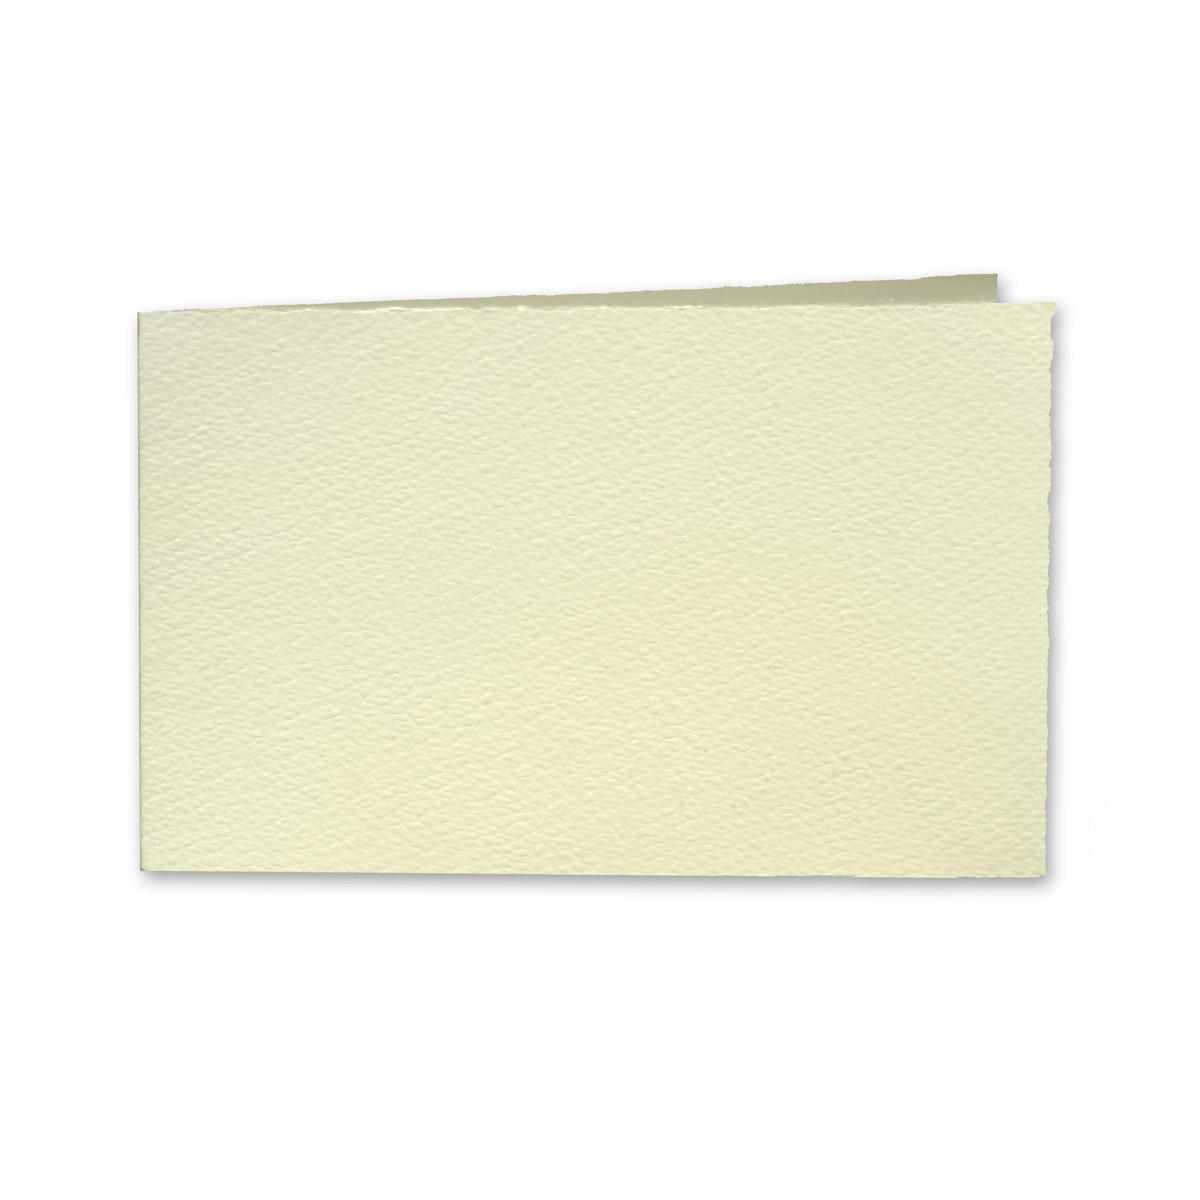 "Arturo Celadon Album Foldovers (600AC) 97# Cover (4.53"" x 13.39"" open size) Pack of 50"